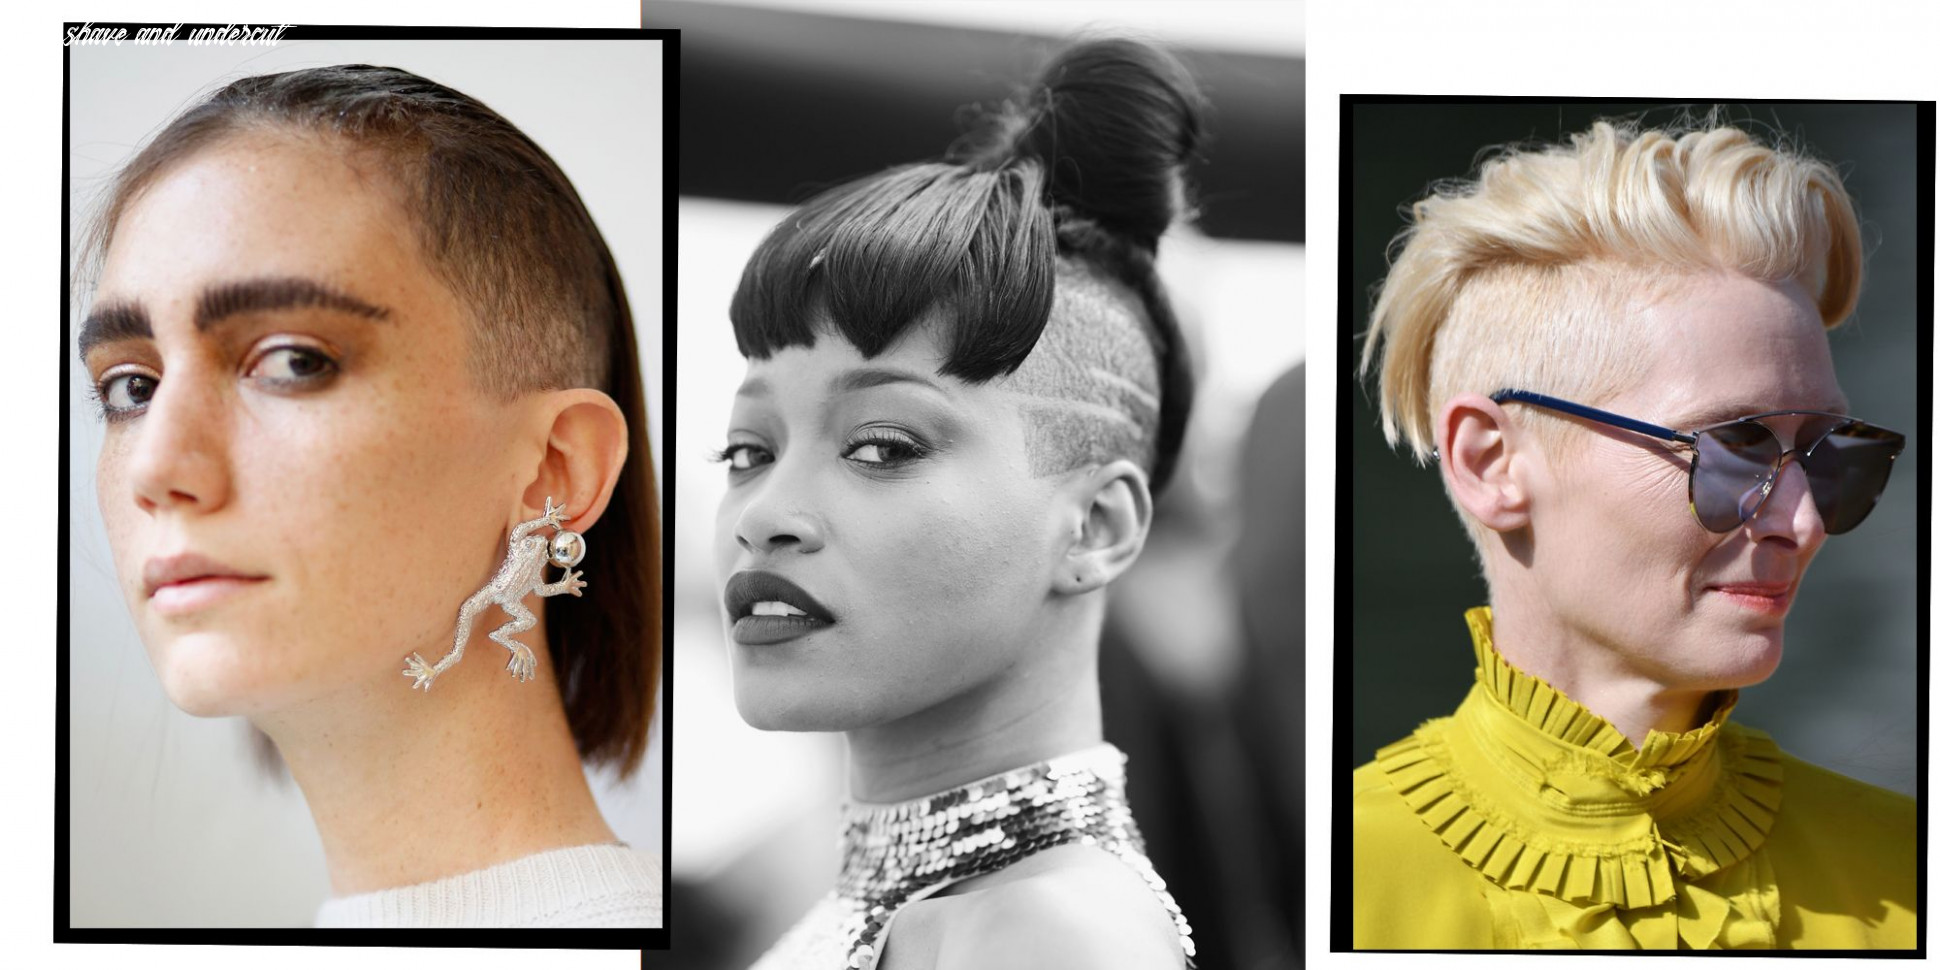 10 undercut hairstyles for women proving shaven heads are